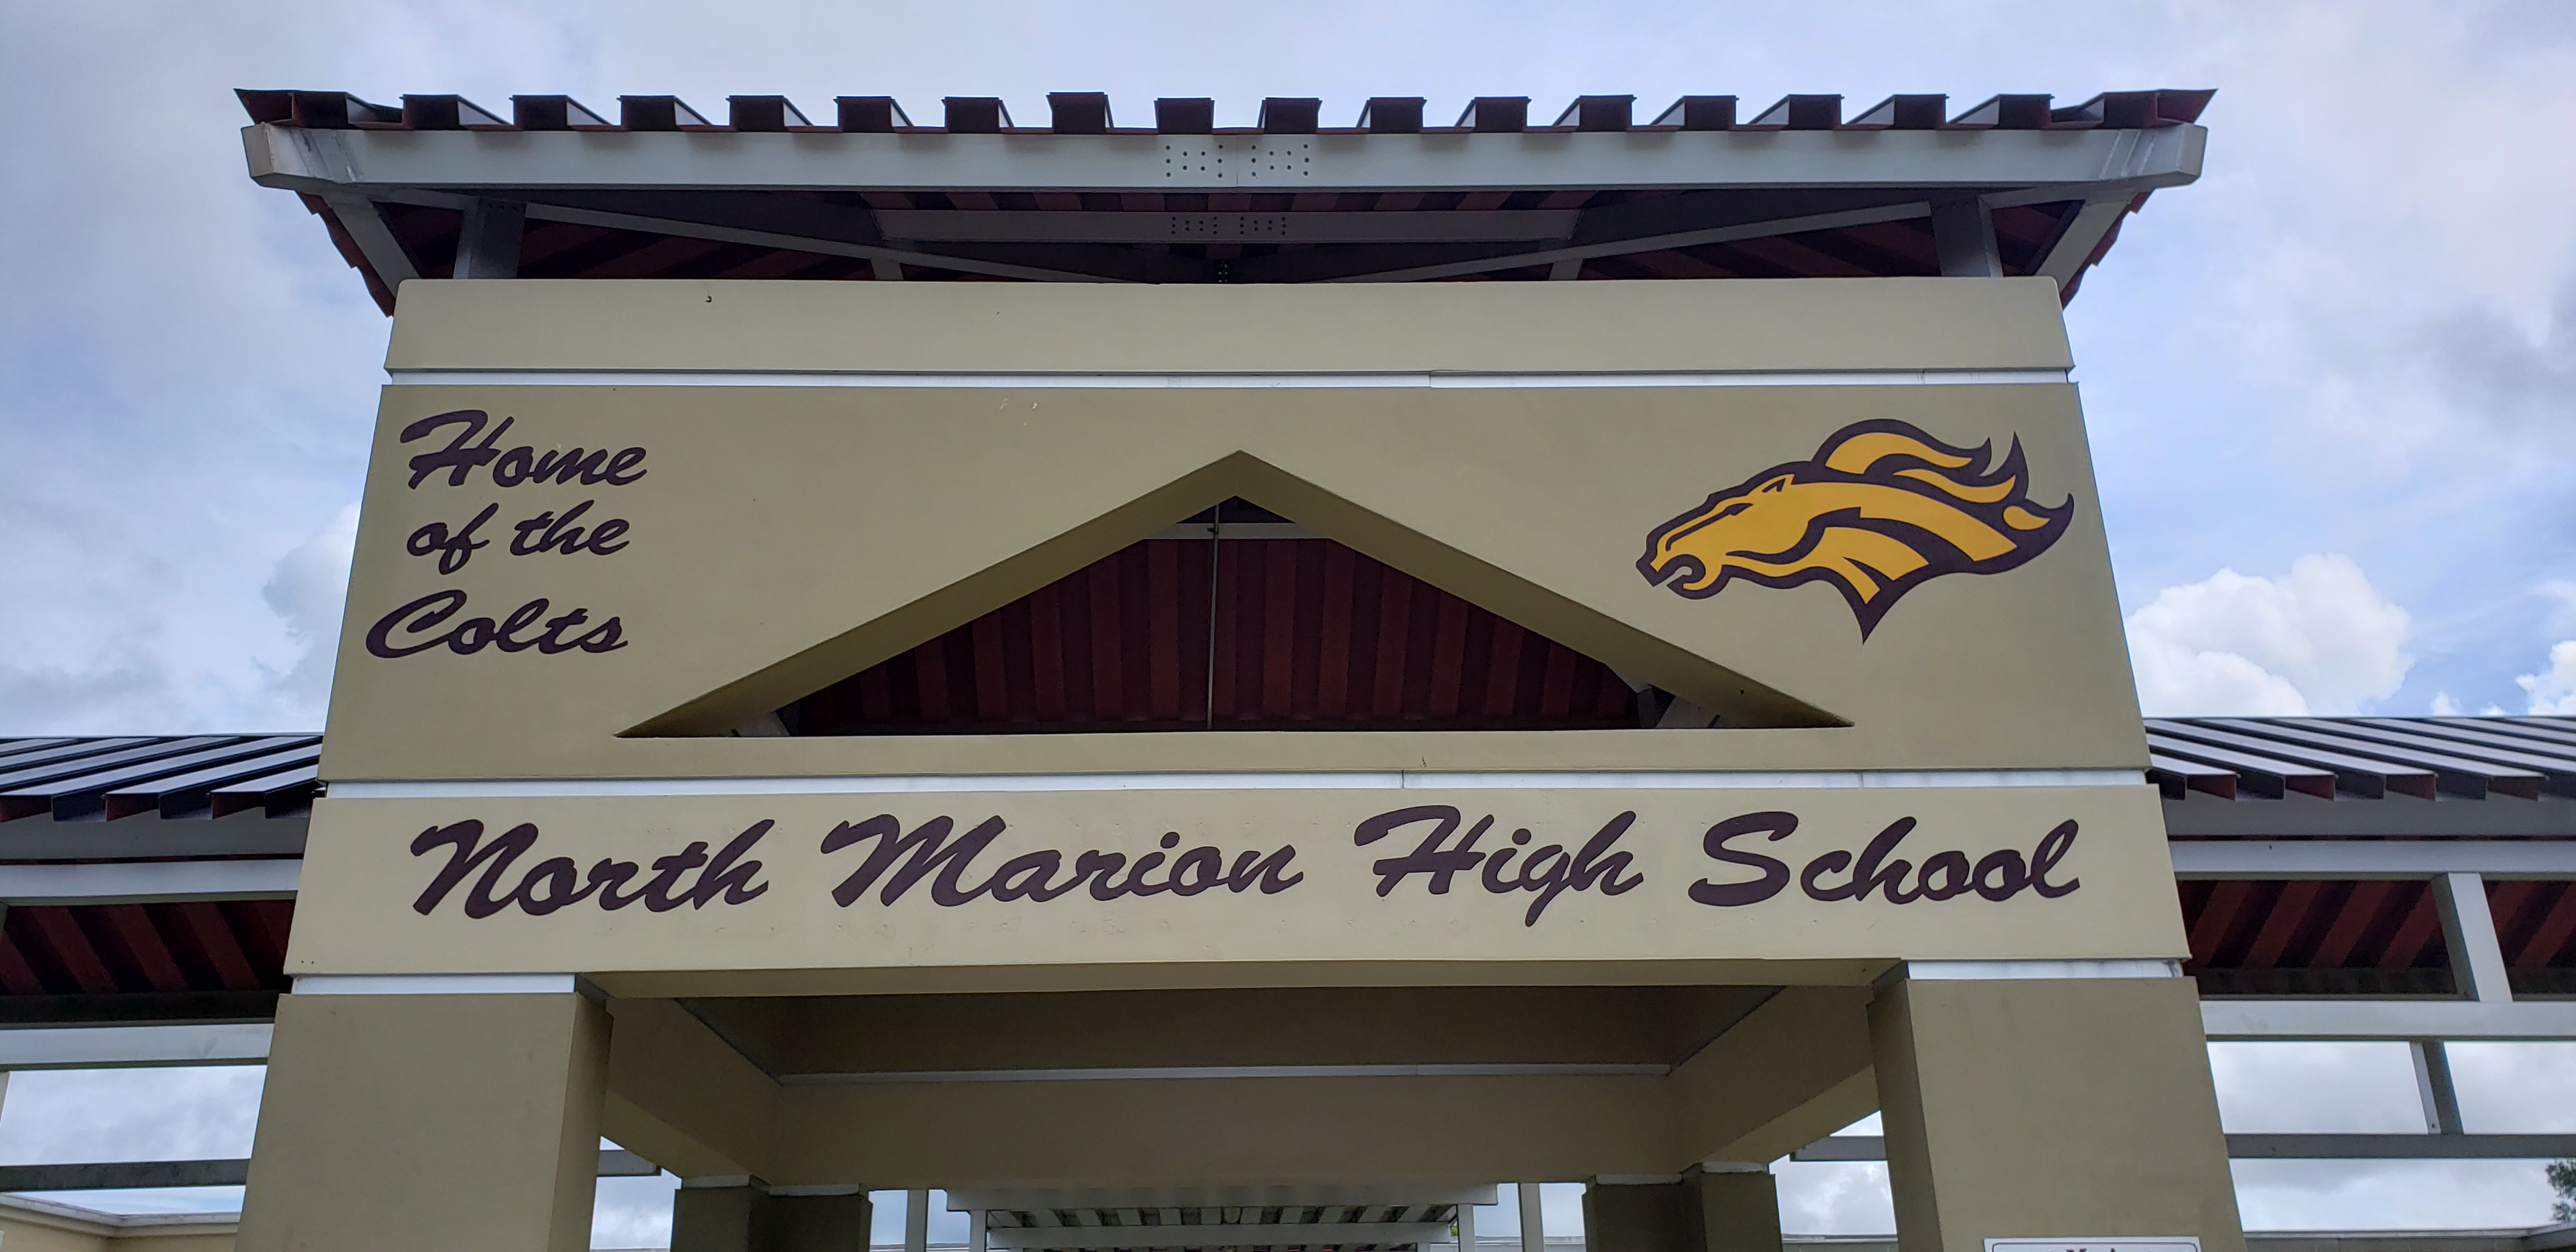 08-02-2019 North Marion High School